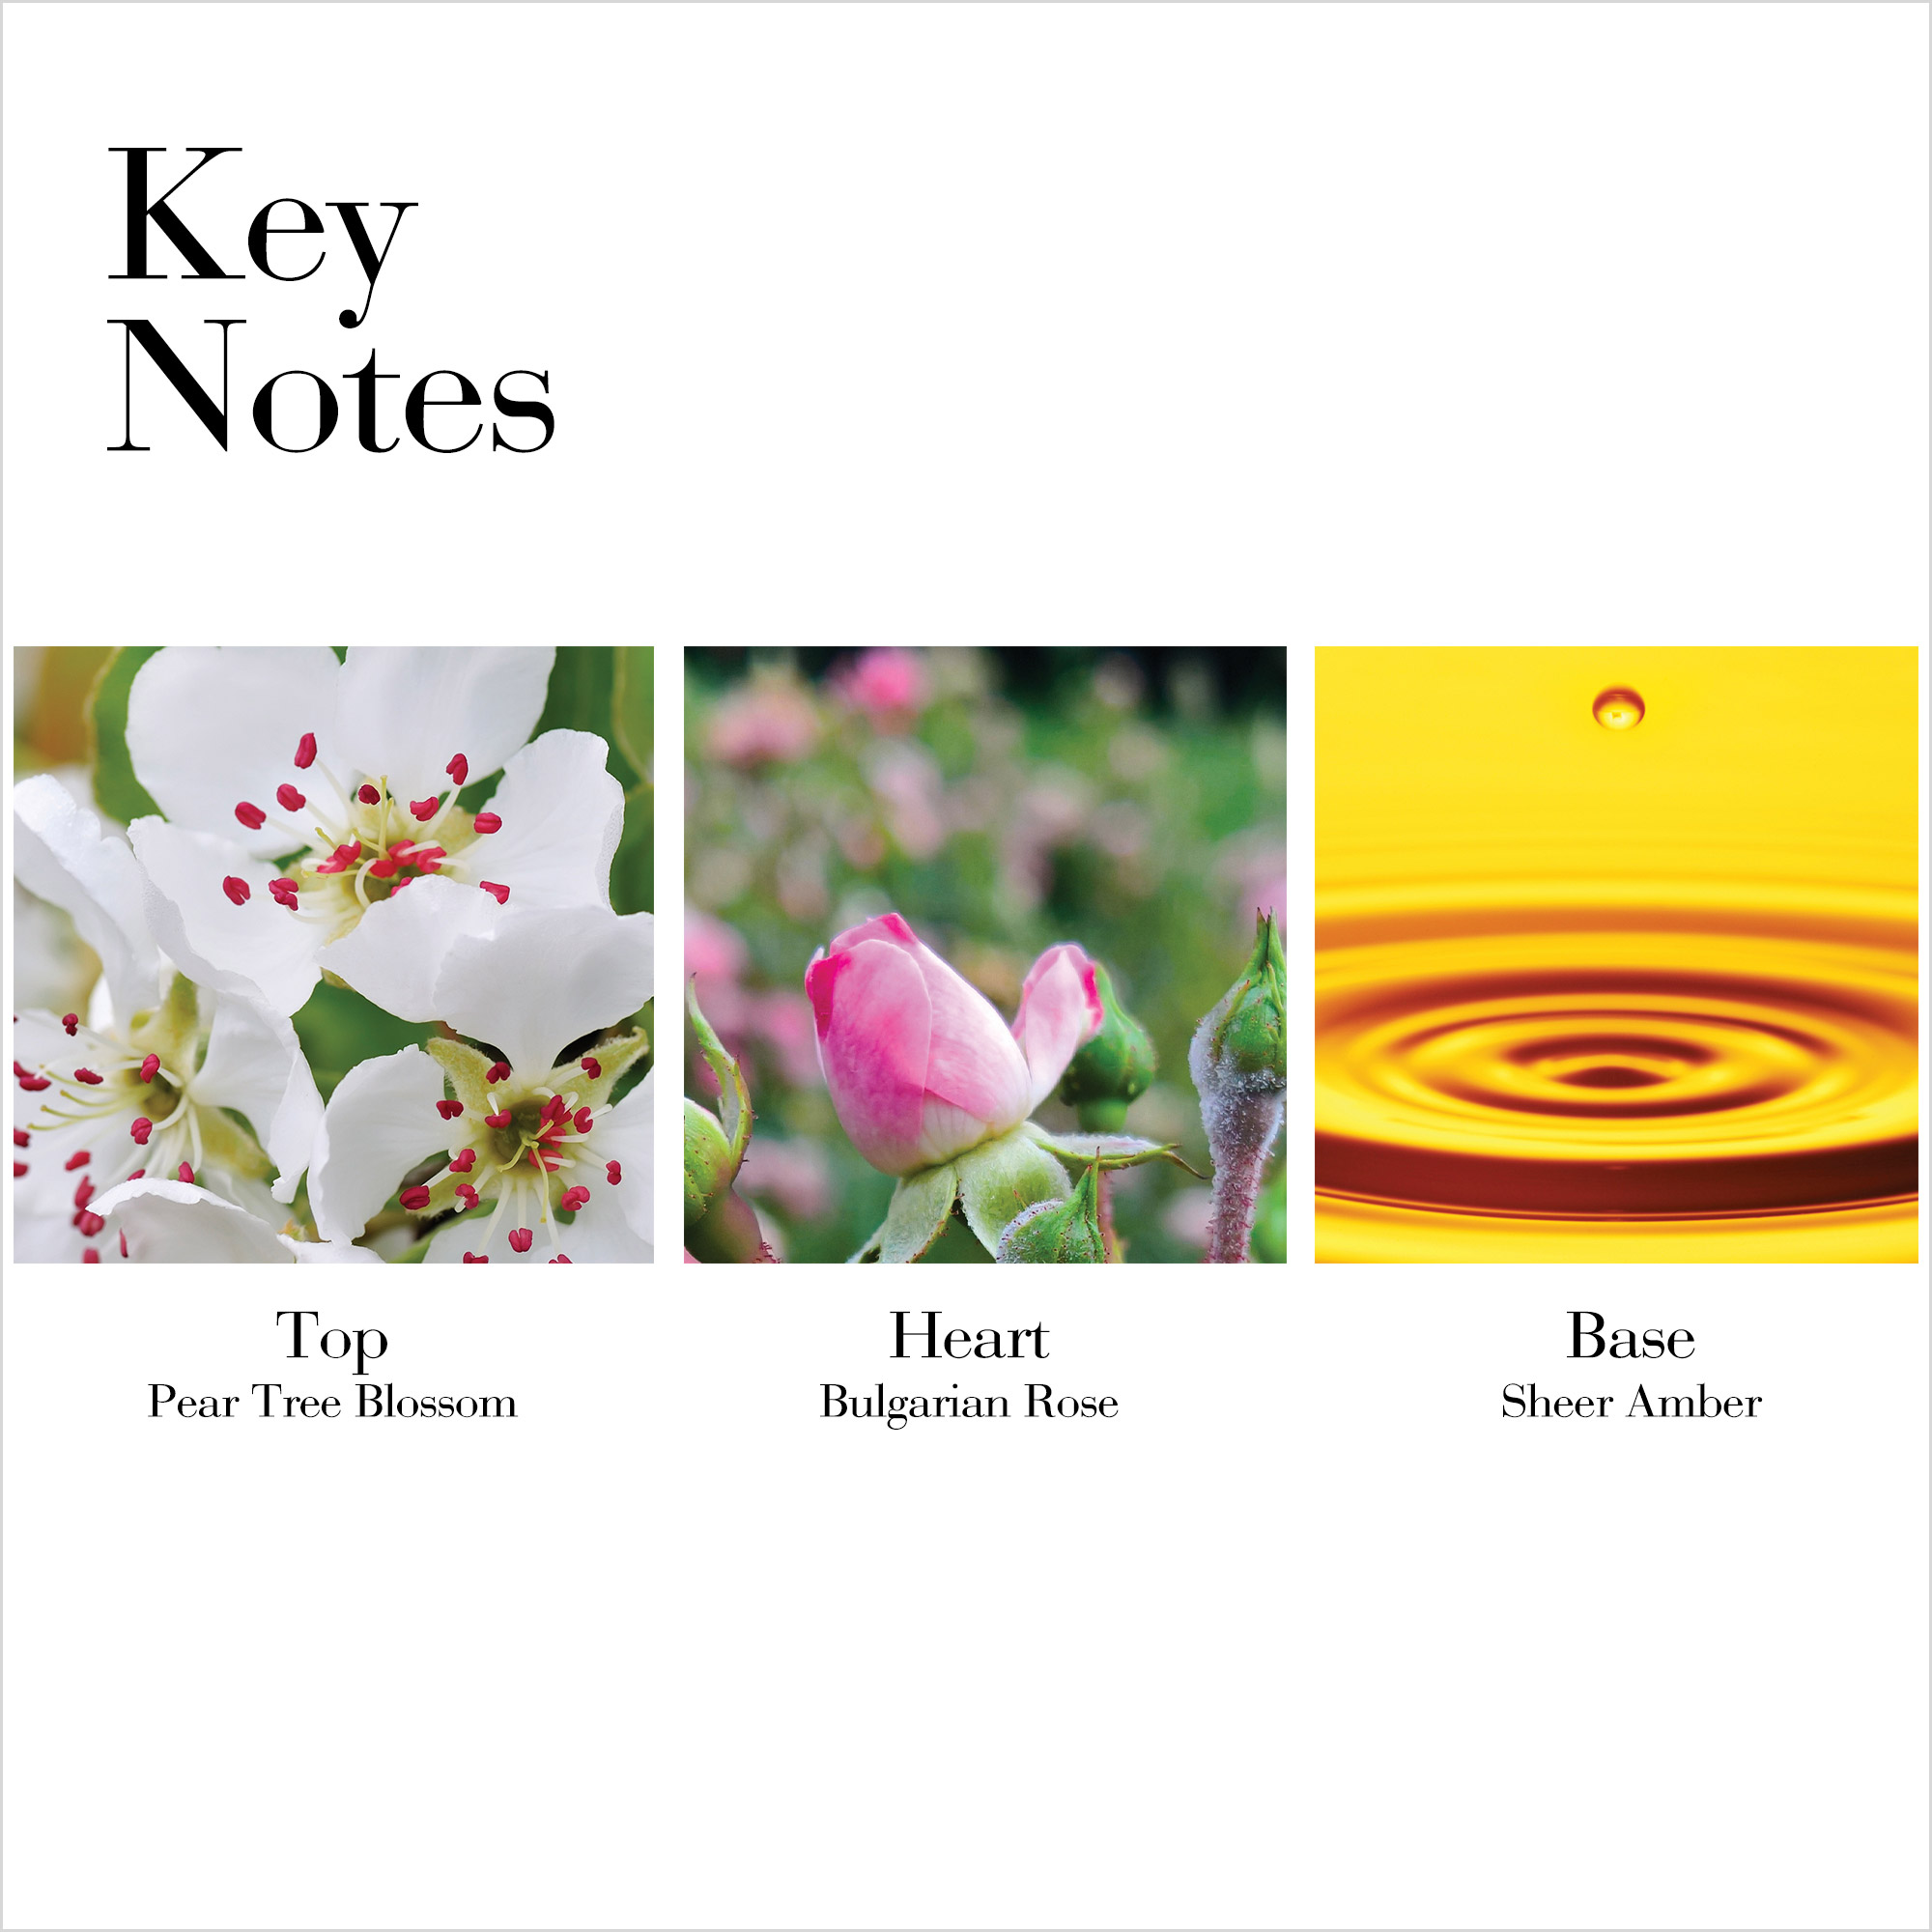 Key Notes- Top Pear Tree Blossom, Heart Bulgarian Rose, Base Sheer Amber